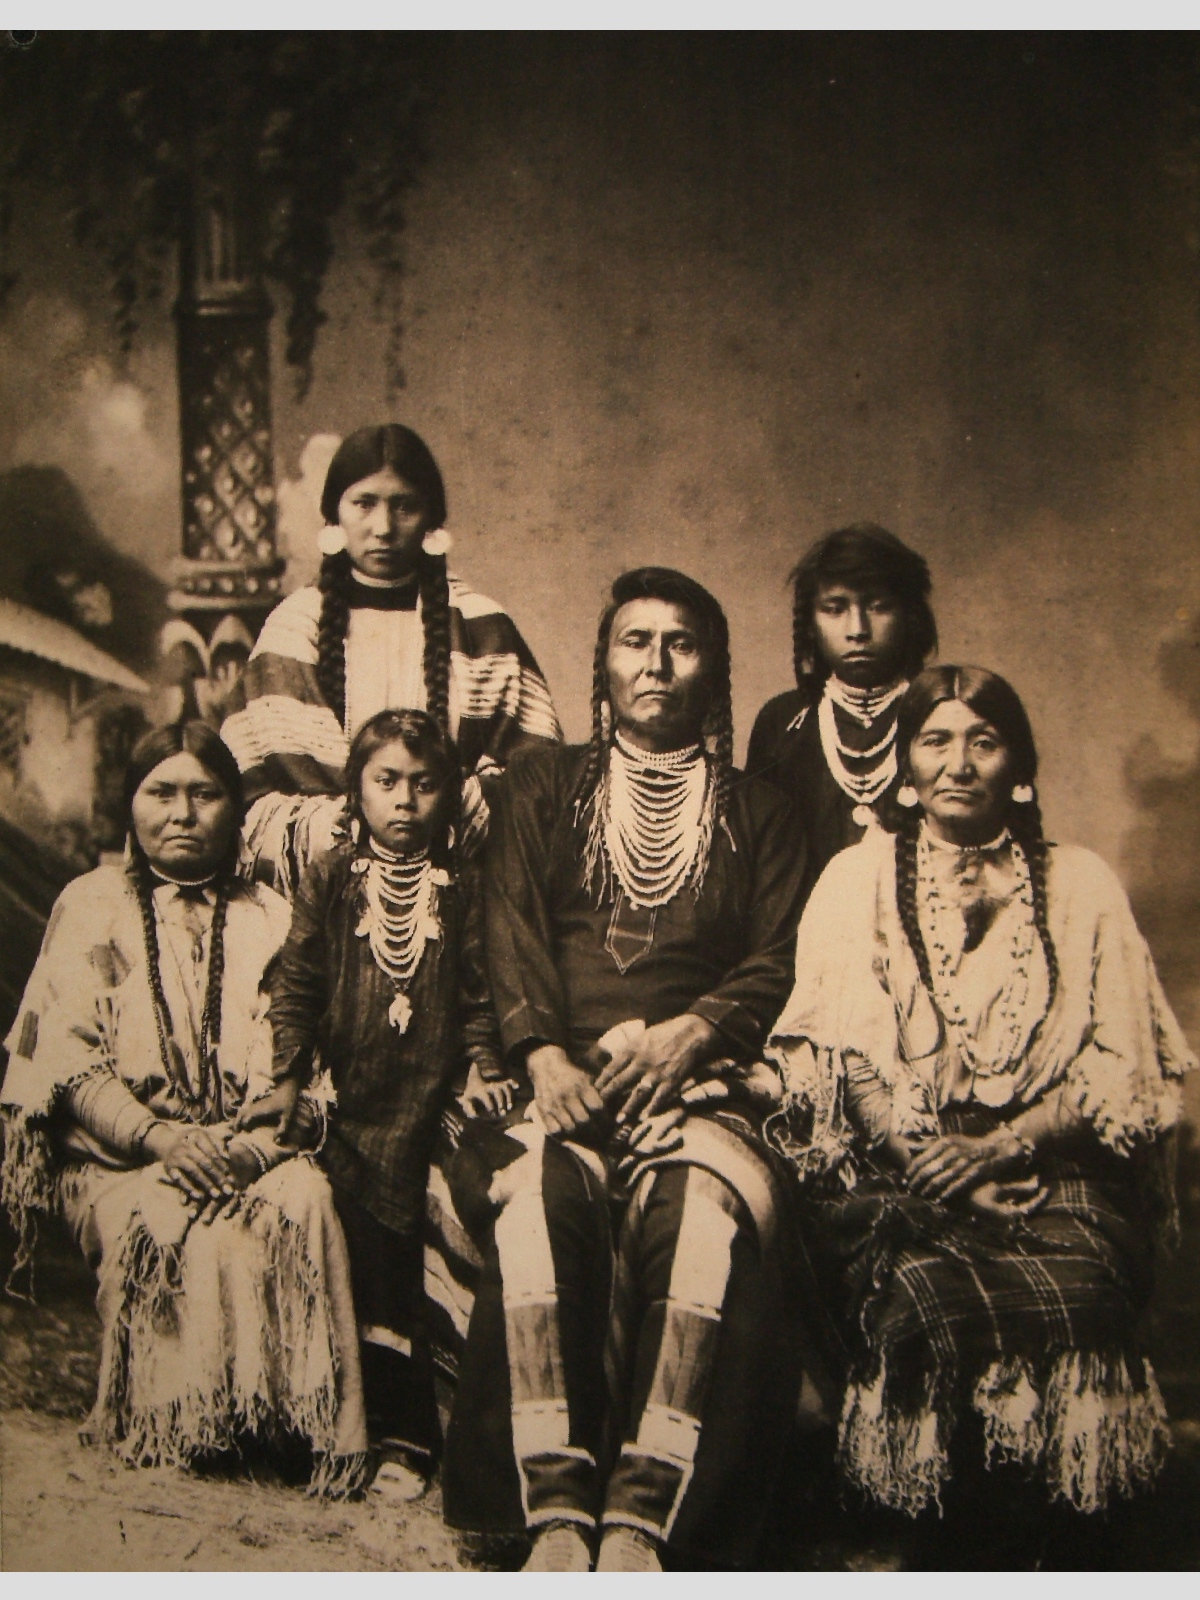 Chief Joseph and his family, photographed at Fort Leavenworth, Kansas, circa 1880.